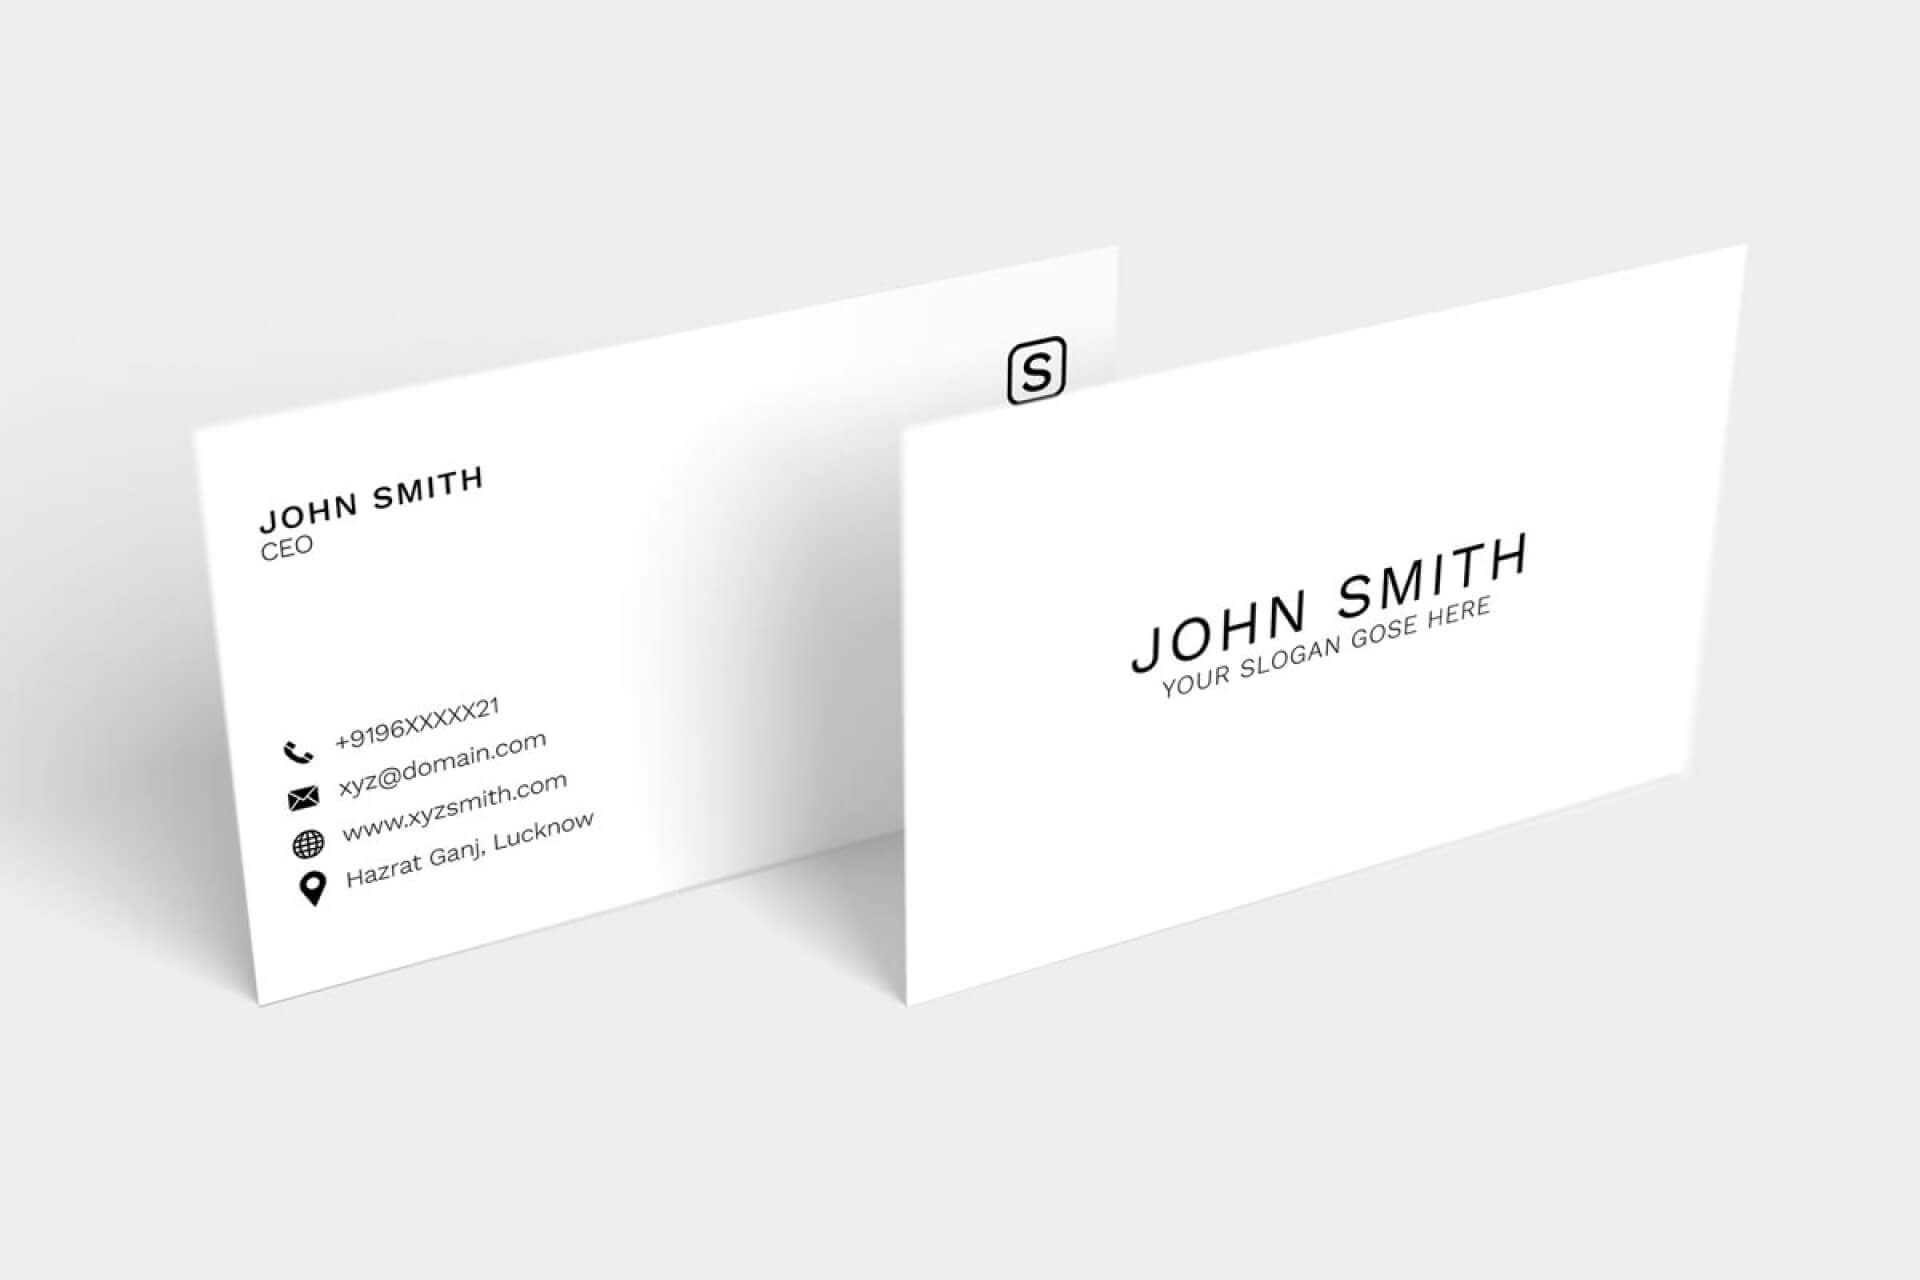 017 75Da9297Edcb7B238D53F00D6A511669 Resize Template Ideas Within Business Card Template Size Photoshop